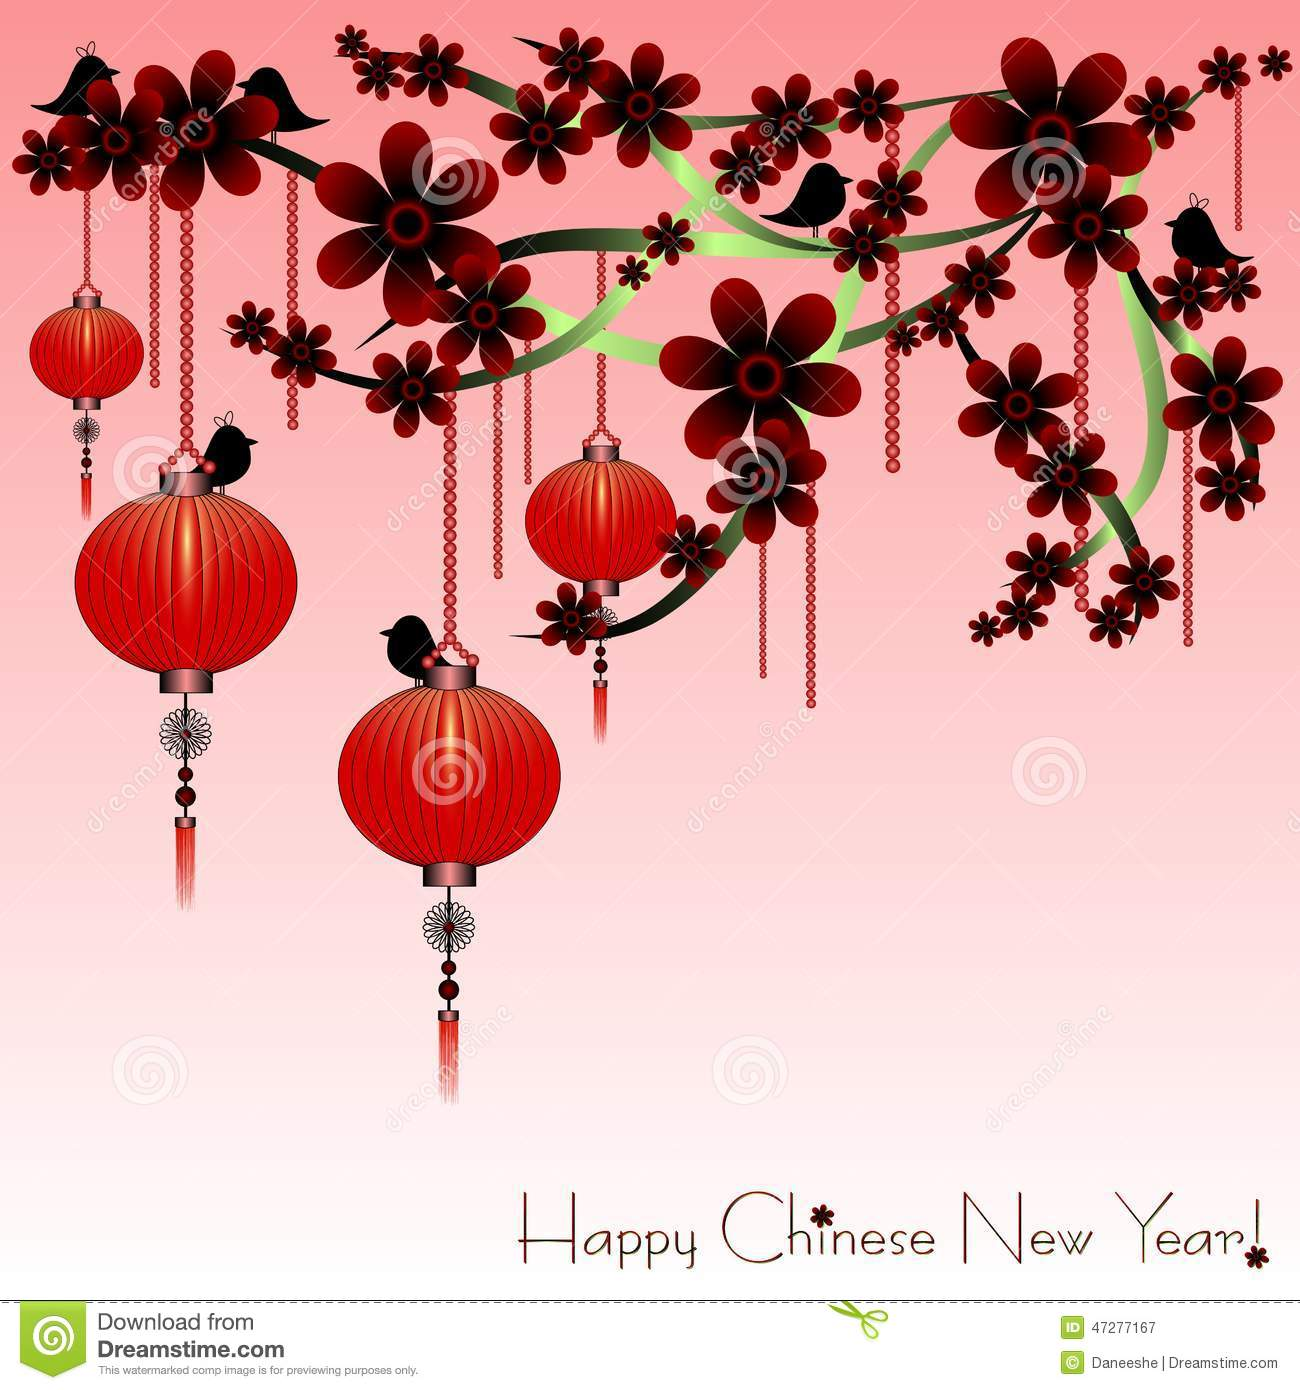 holiday postcard to the chinese new year 2015 stock vector - image